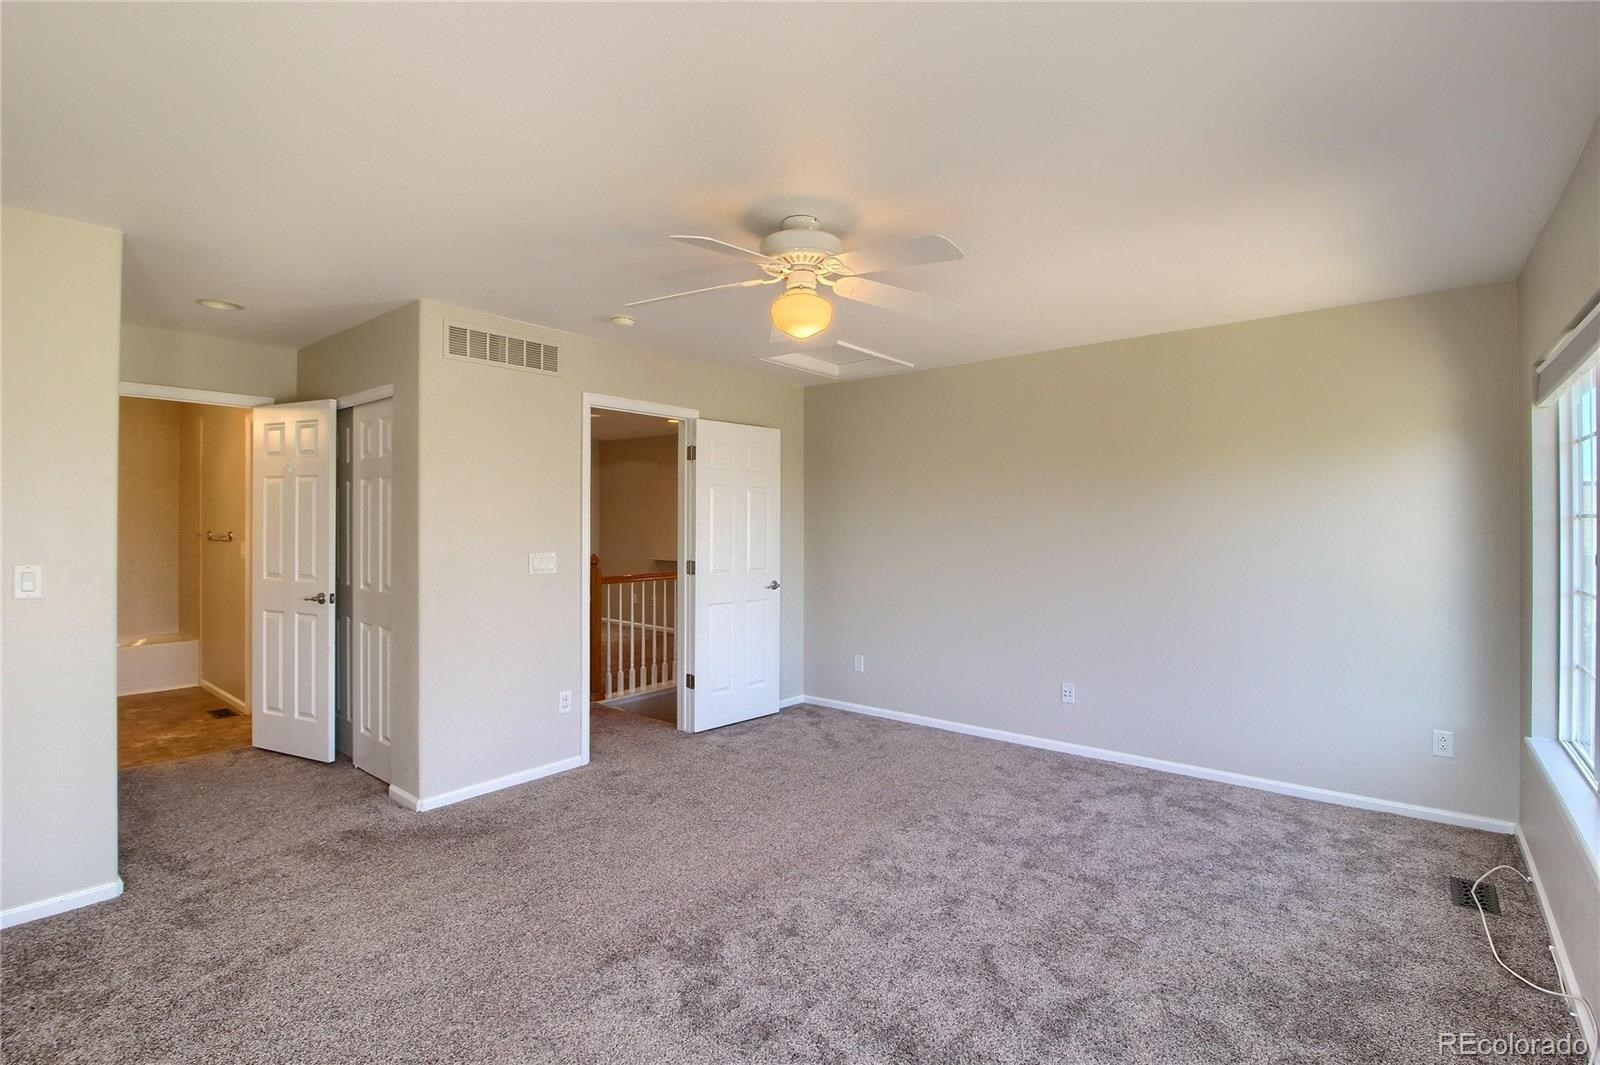 MLS# 8597792 - 17 - 13787 Stone Circle #101, Broomfield, CO 80023